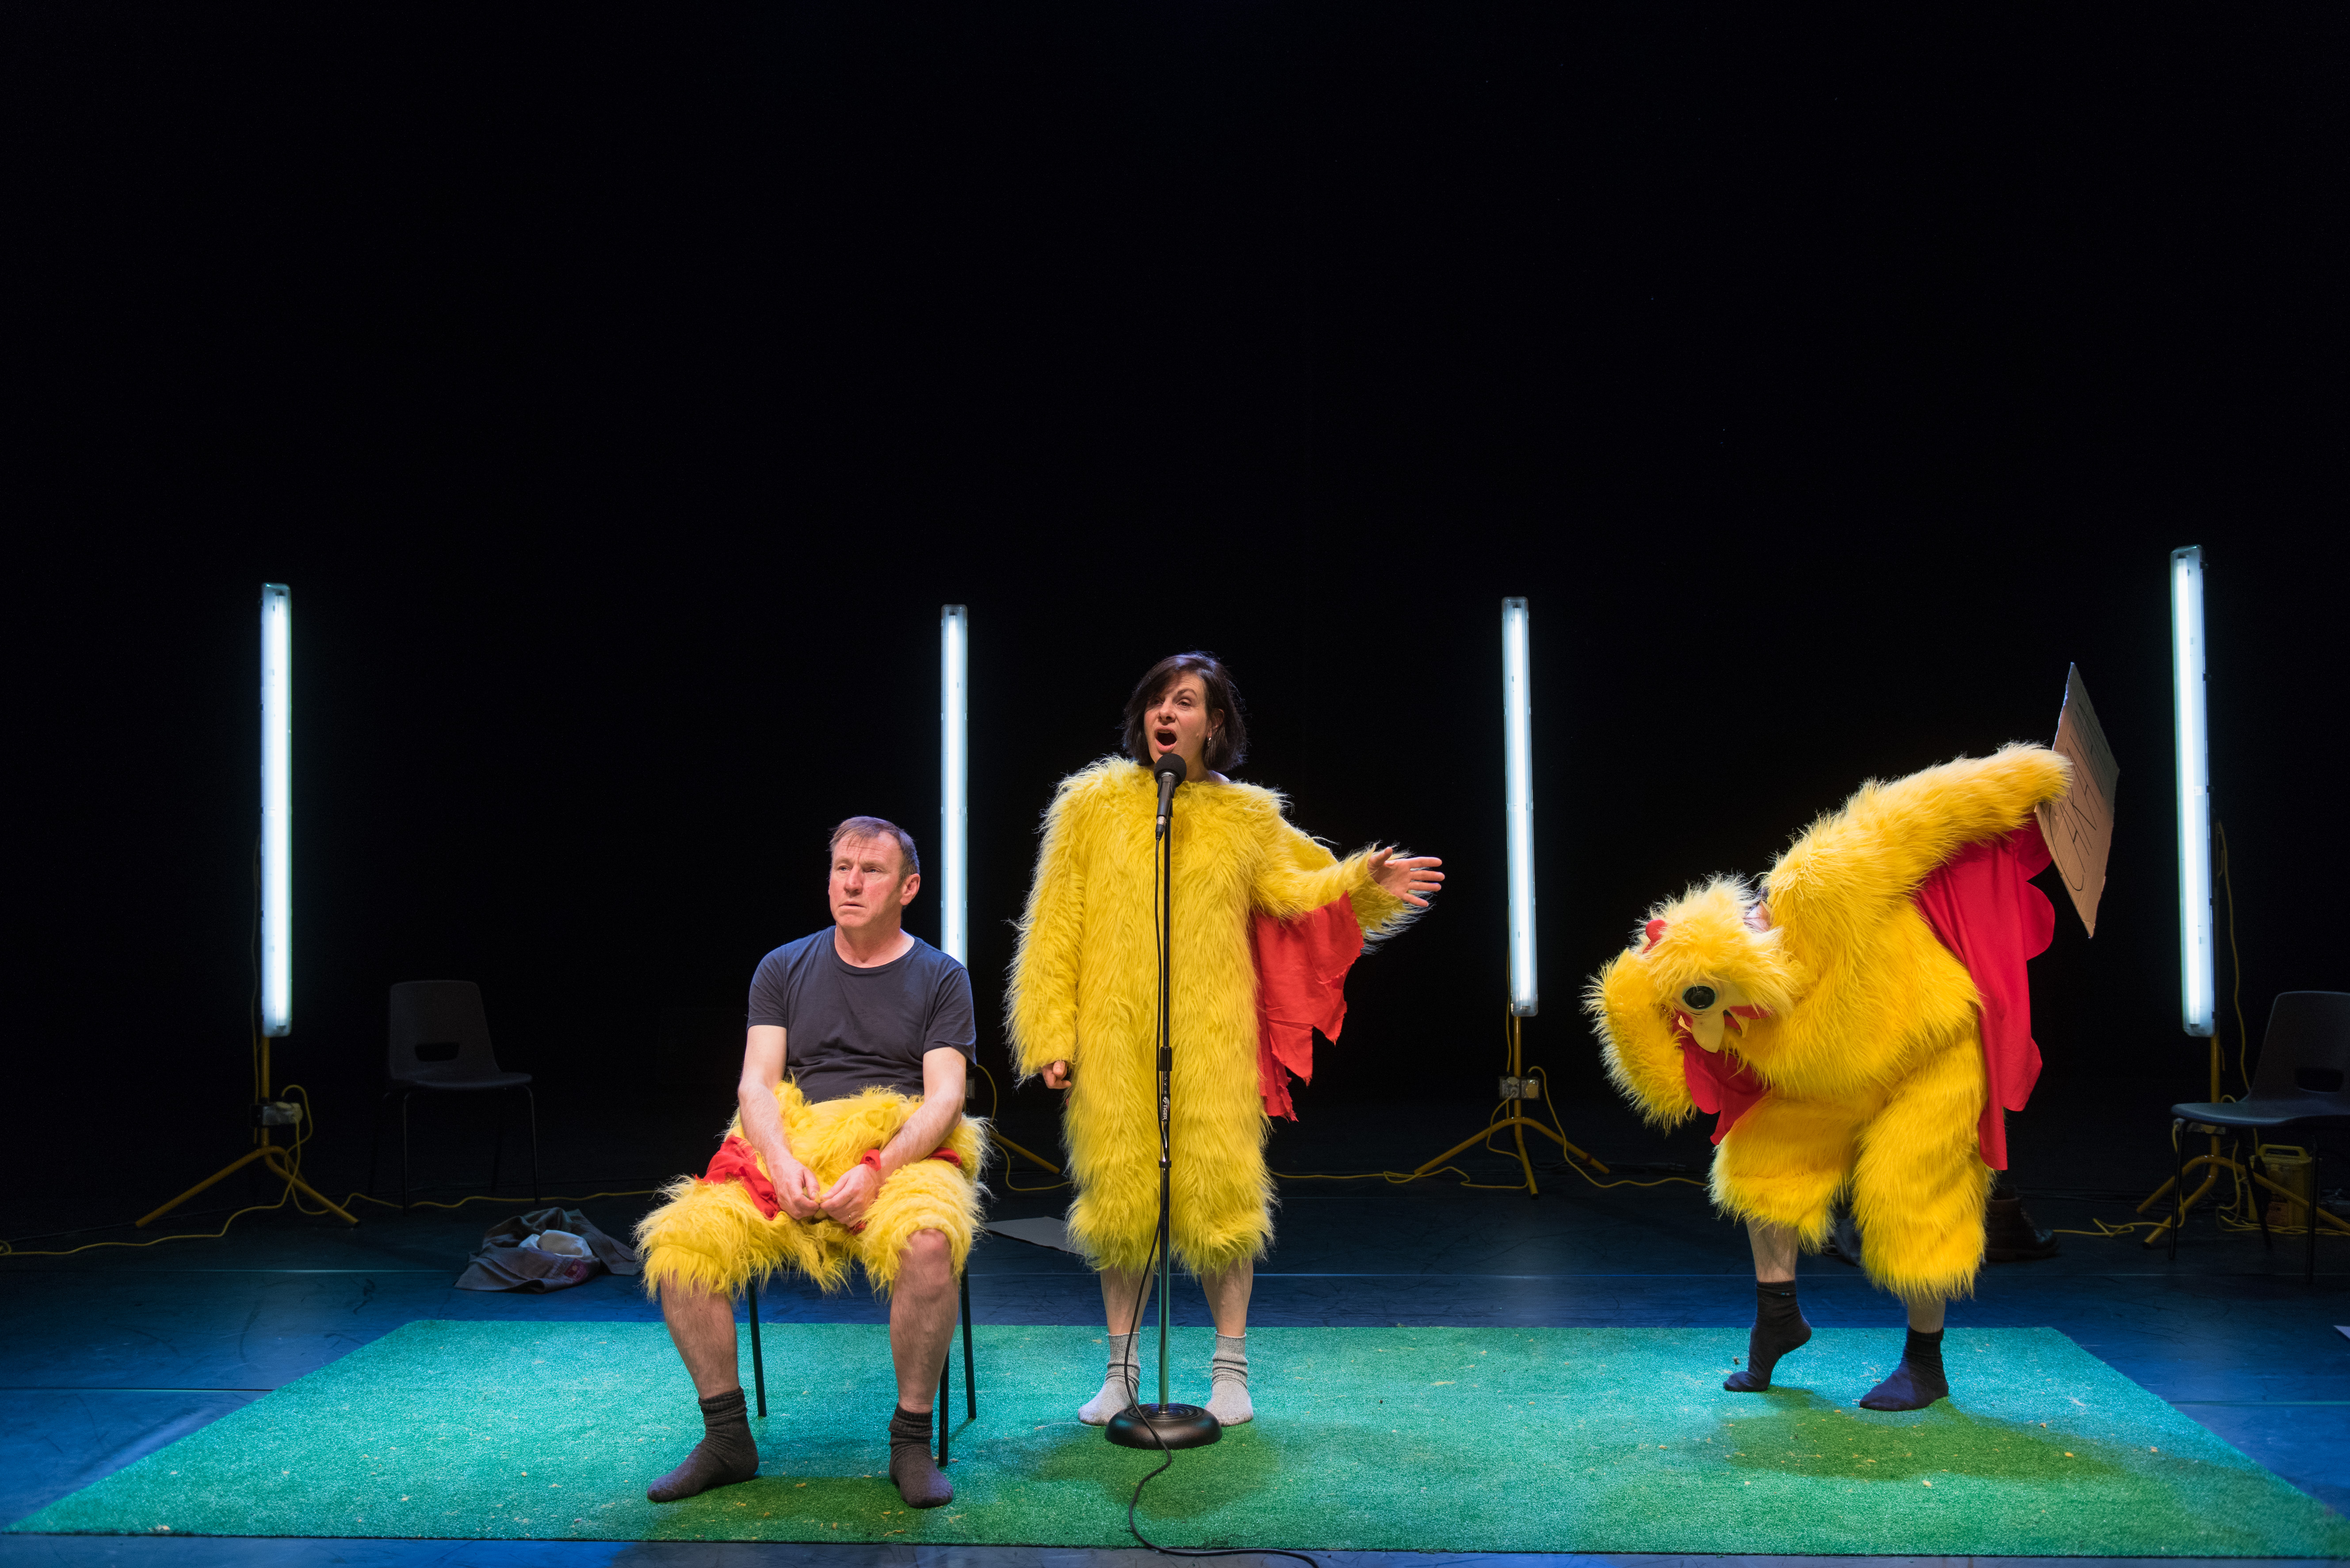 three performers in chicken costumes